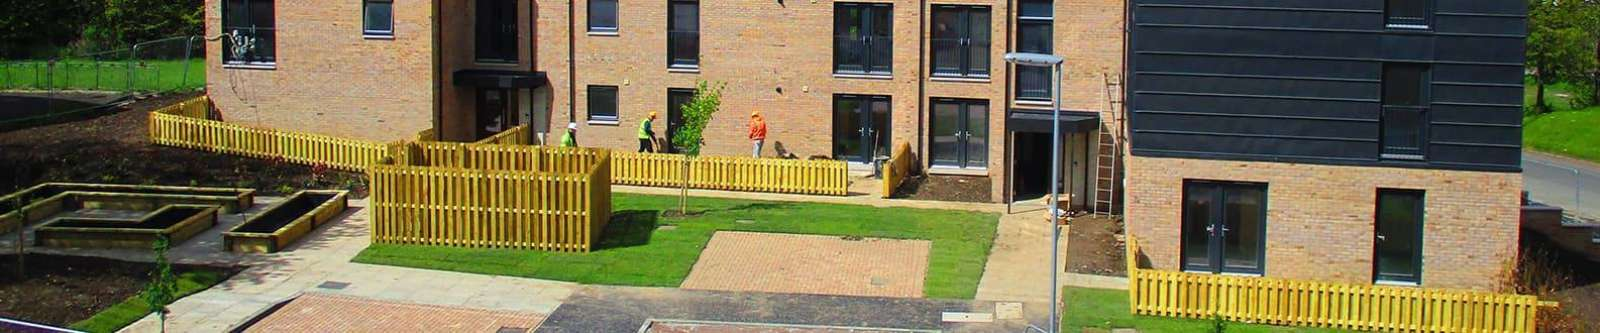 Terrain drainage and supply pipe systems for local authority and high rise residential buildings